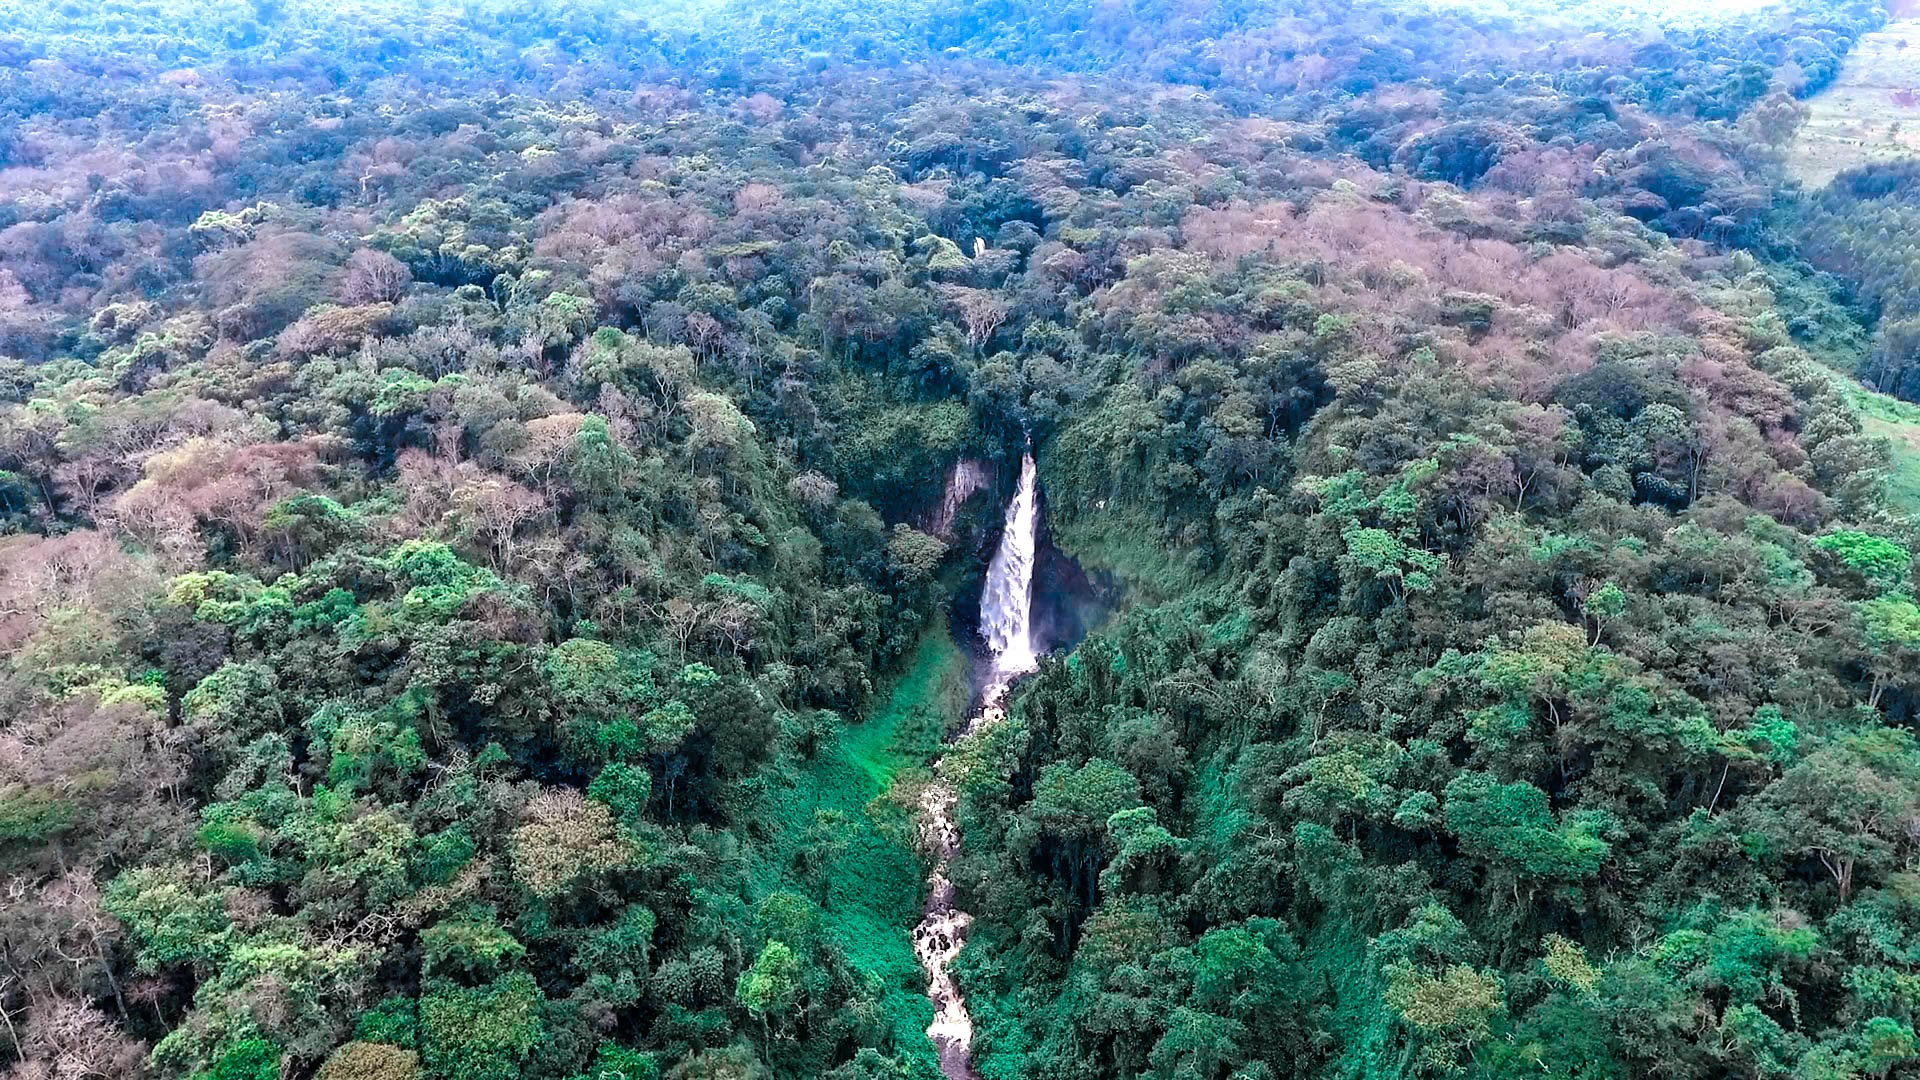 Aerial View of Kahuzi Biega National Park Congo